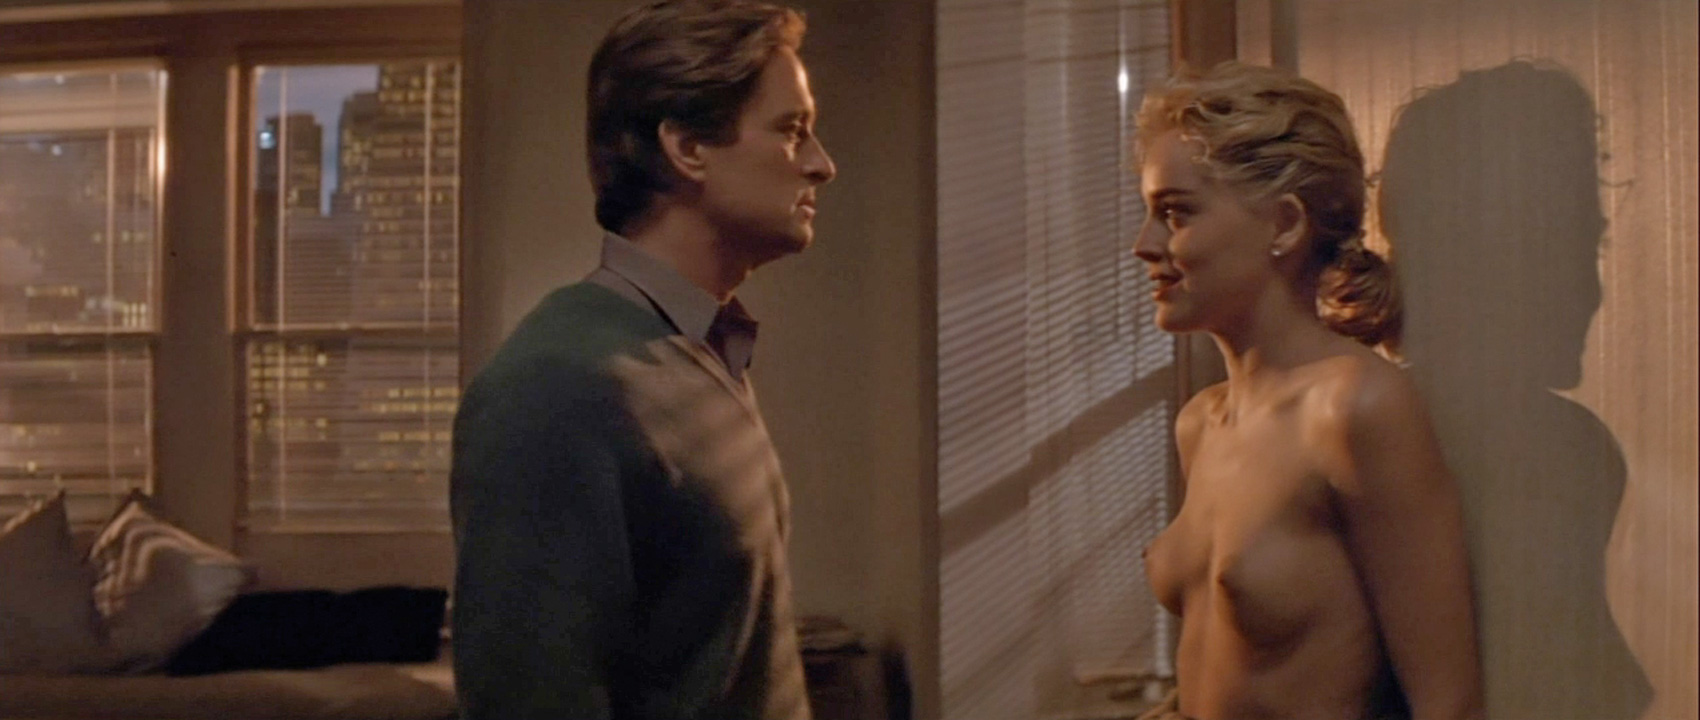 Consider, that Sharon stone masterbaits porn afraid